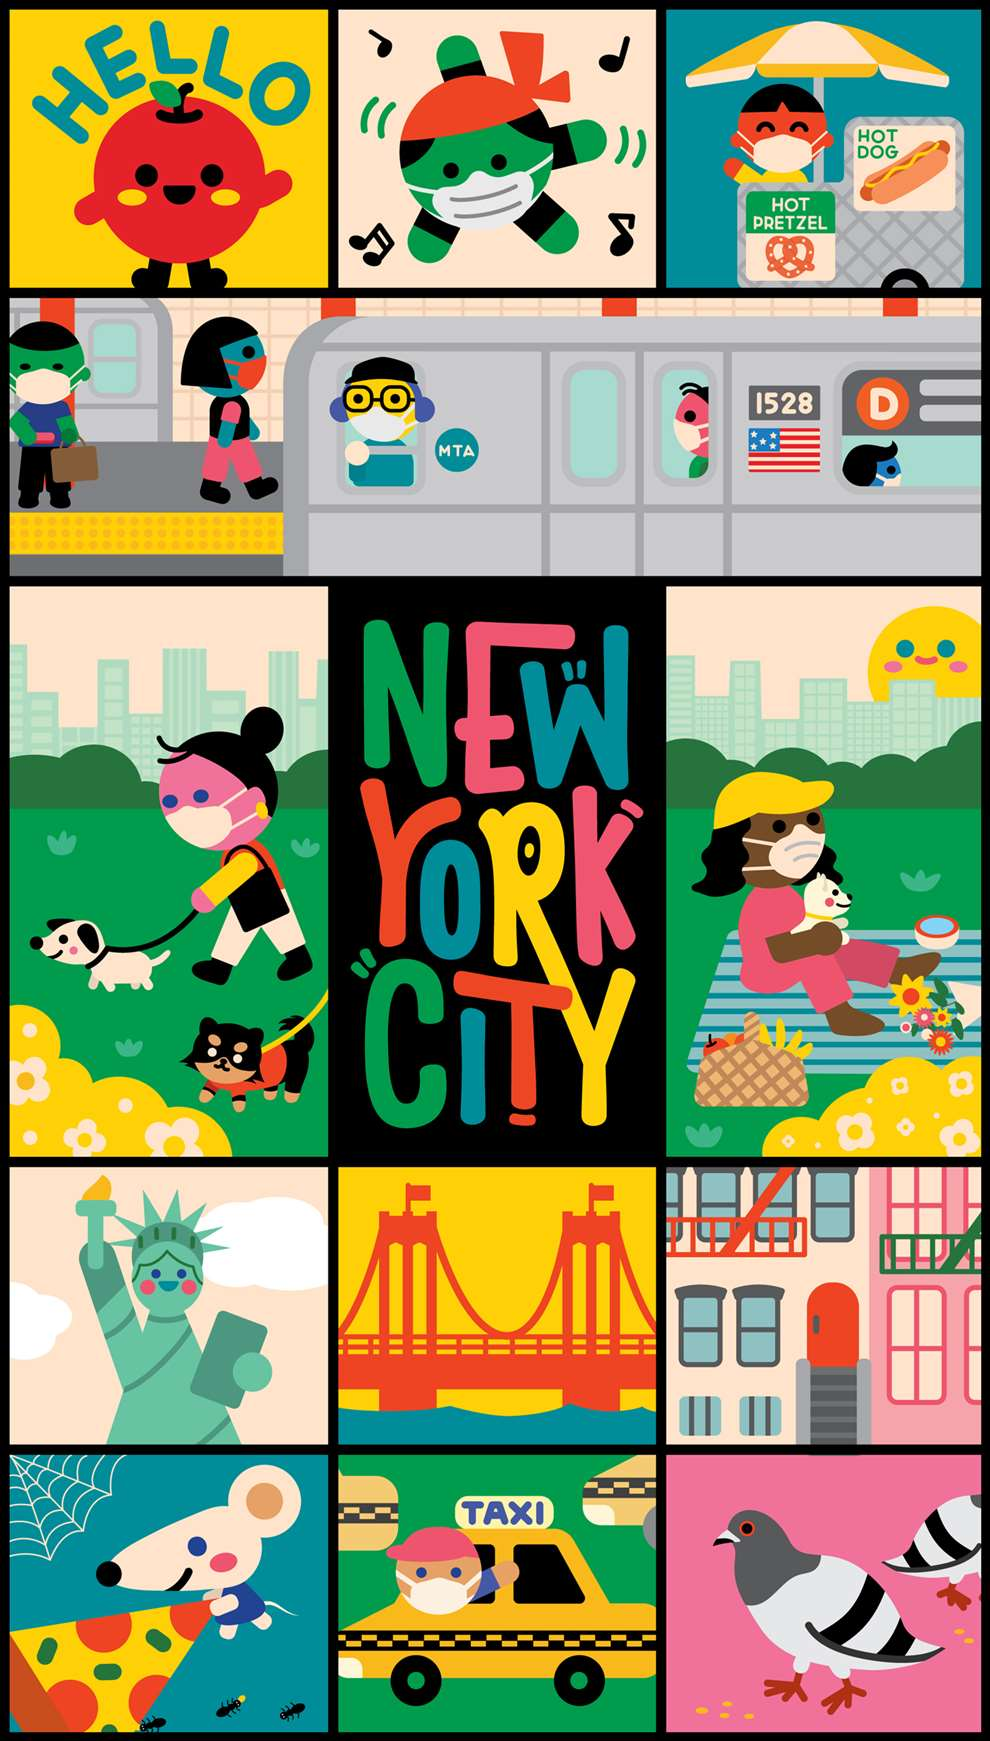 Uijung Kim, Illustration of New York City for LinkNYC. Travel, city. Poster playful bold style.